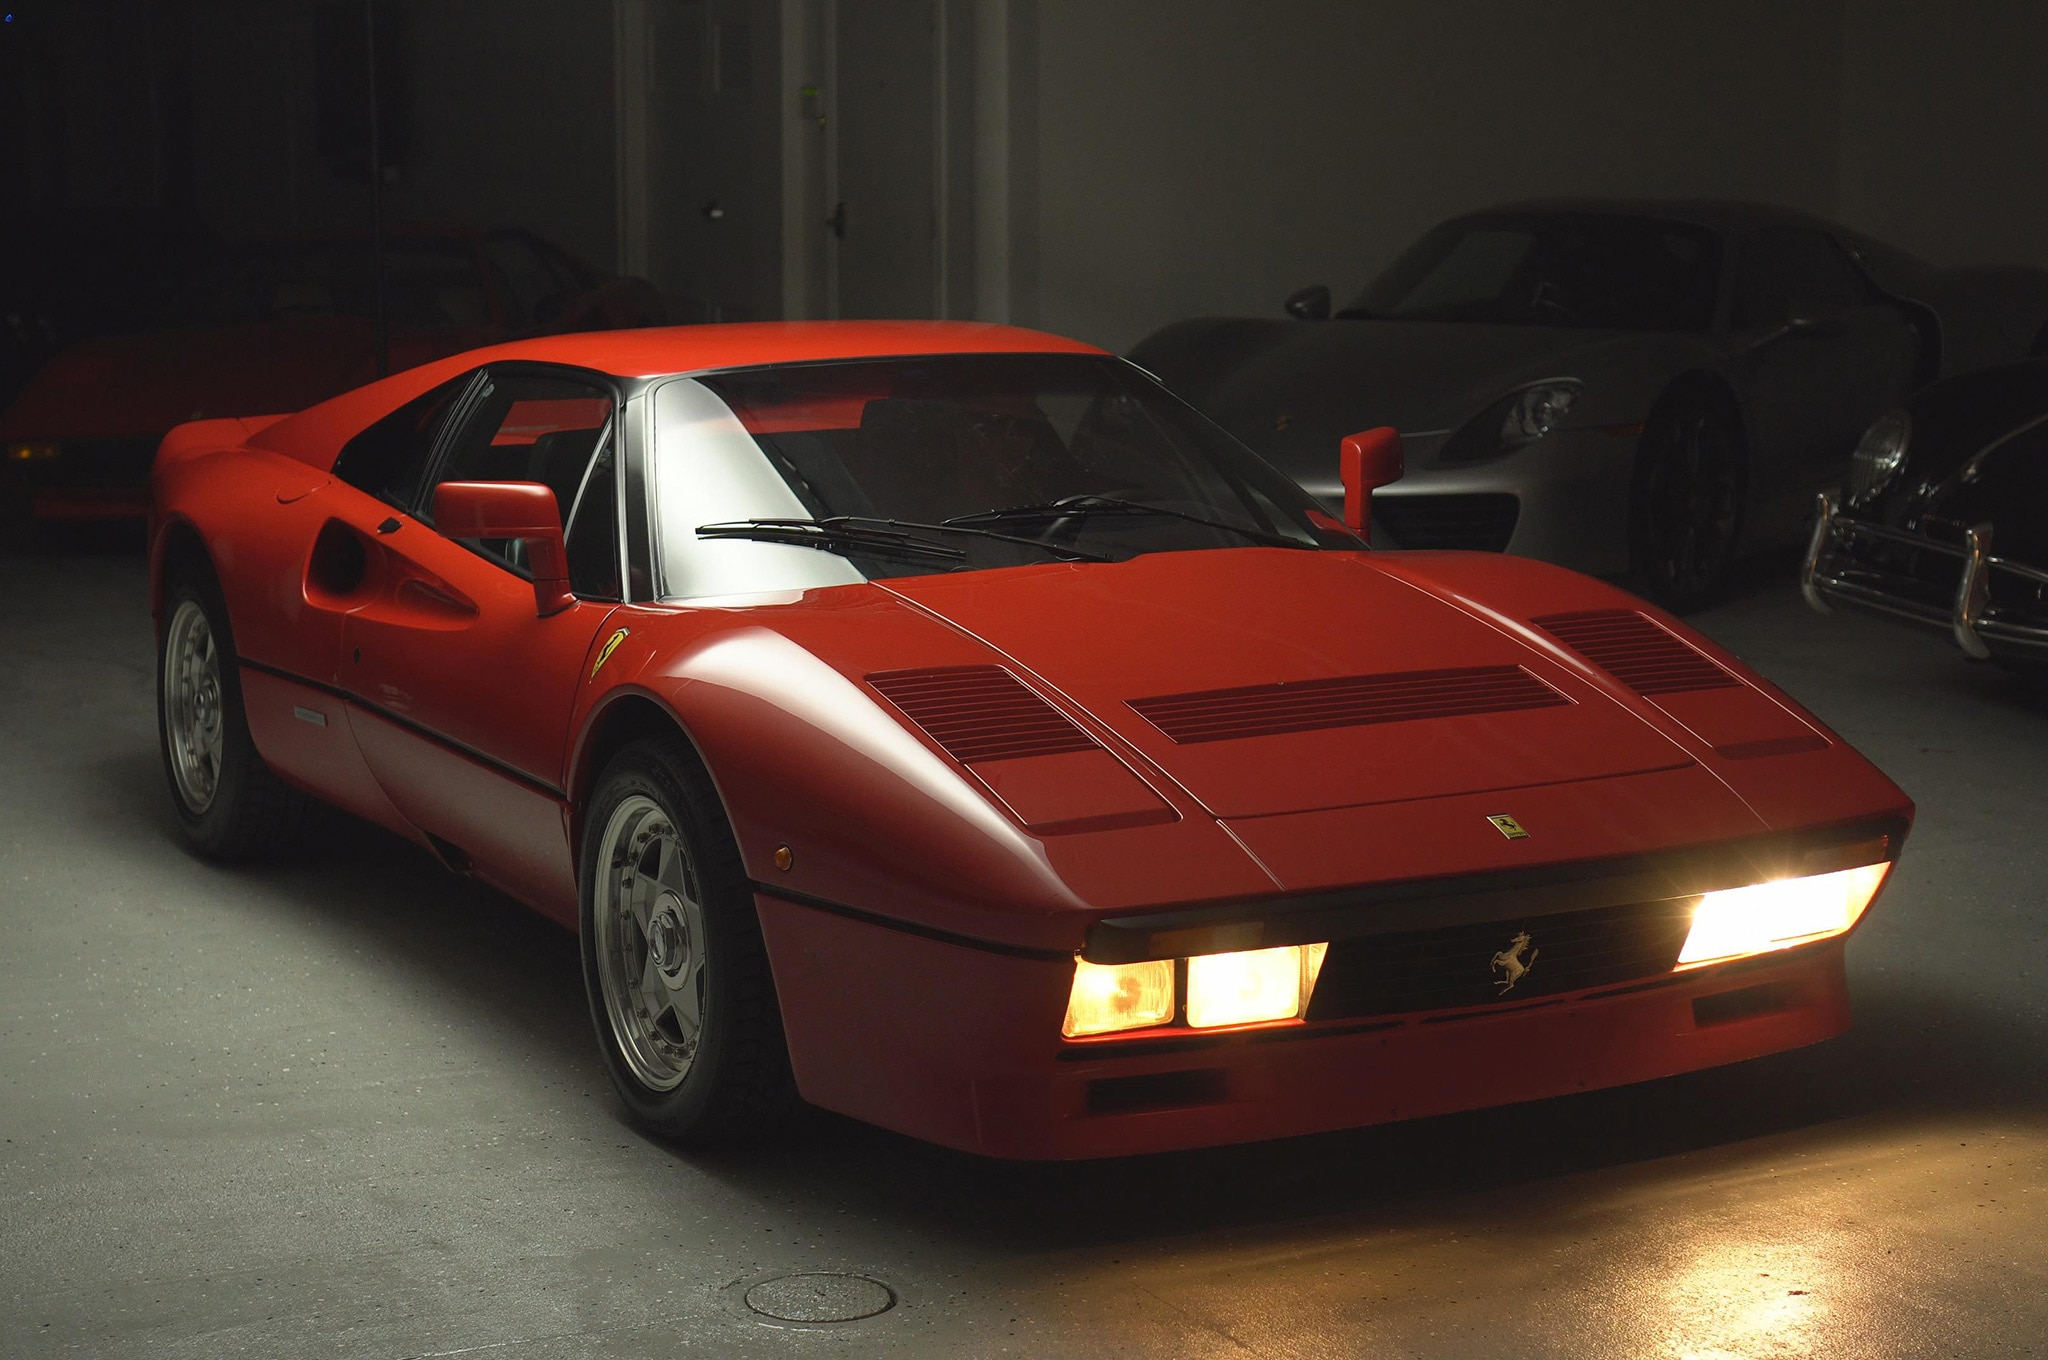 The Sounds Of This Ferrari 288 GTO Are Stronger Than Any